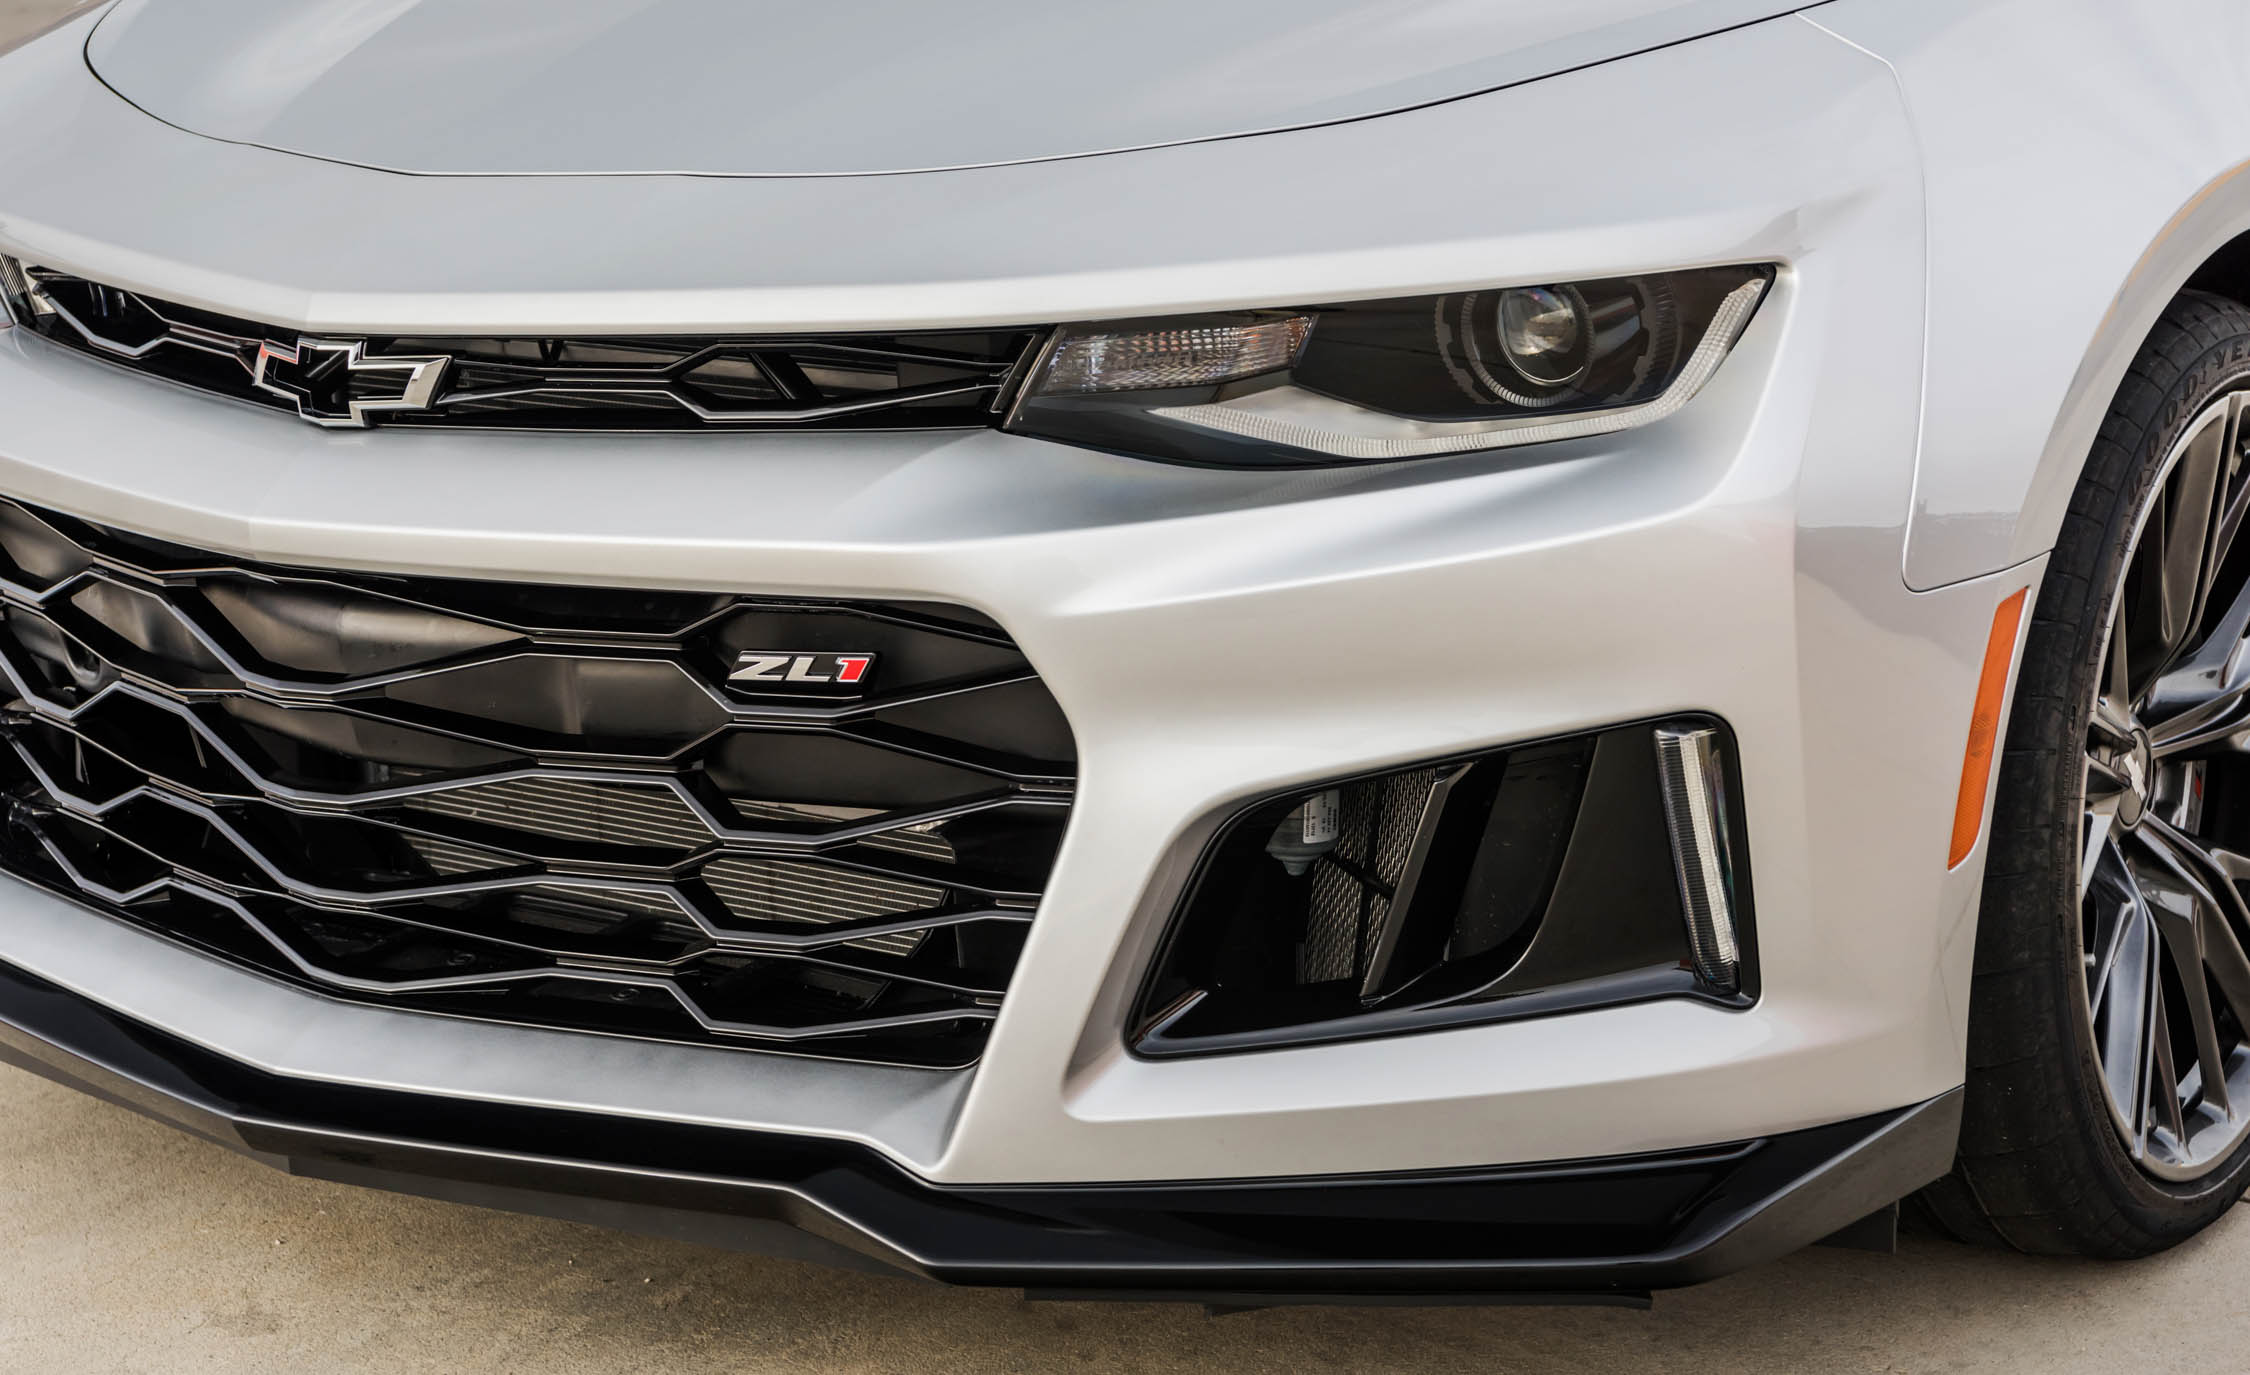 2017 Chevrolet Camaro ZL1 White Exterior View Headlight And Bumper (Photo 51 of 62)